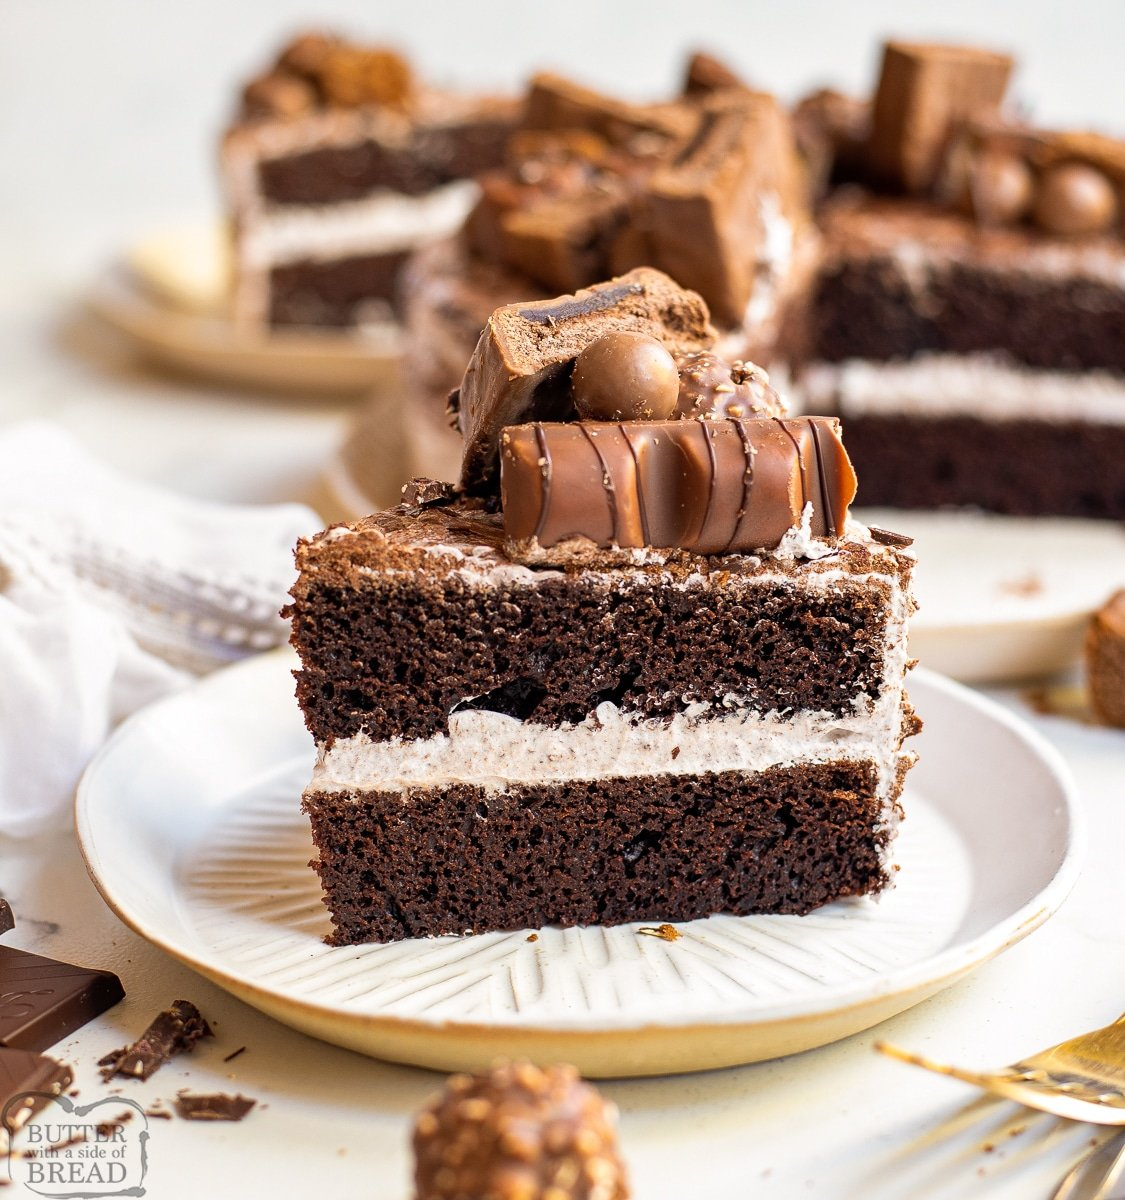 slice of chocolate cake with whipped cream frosting